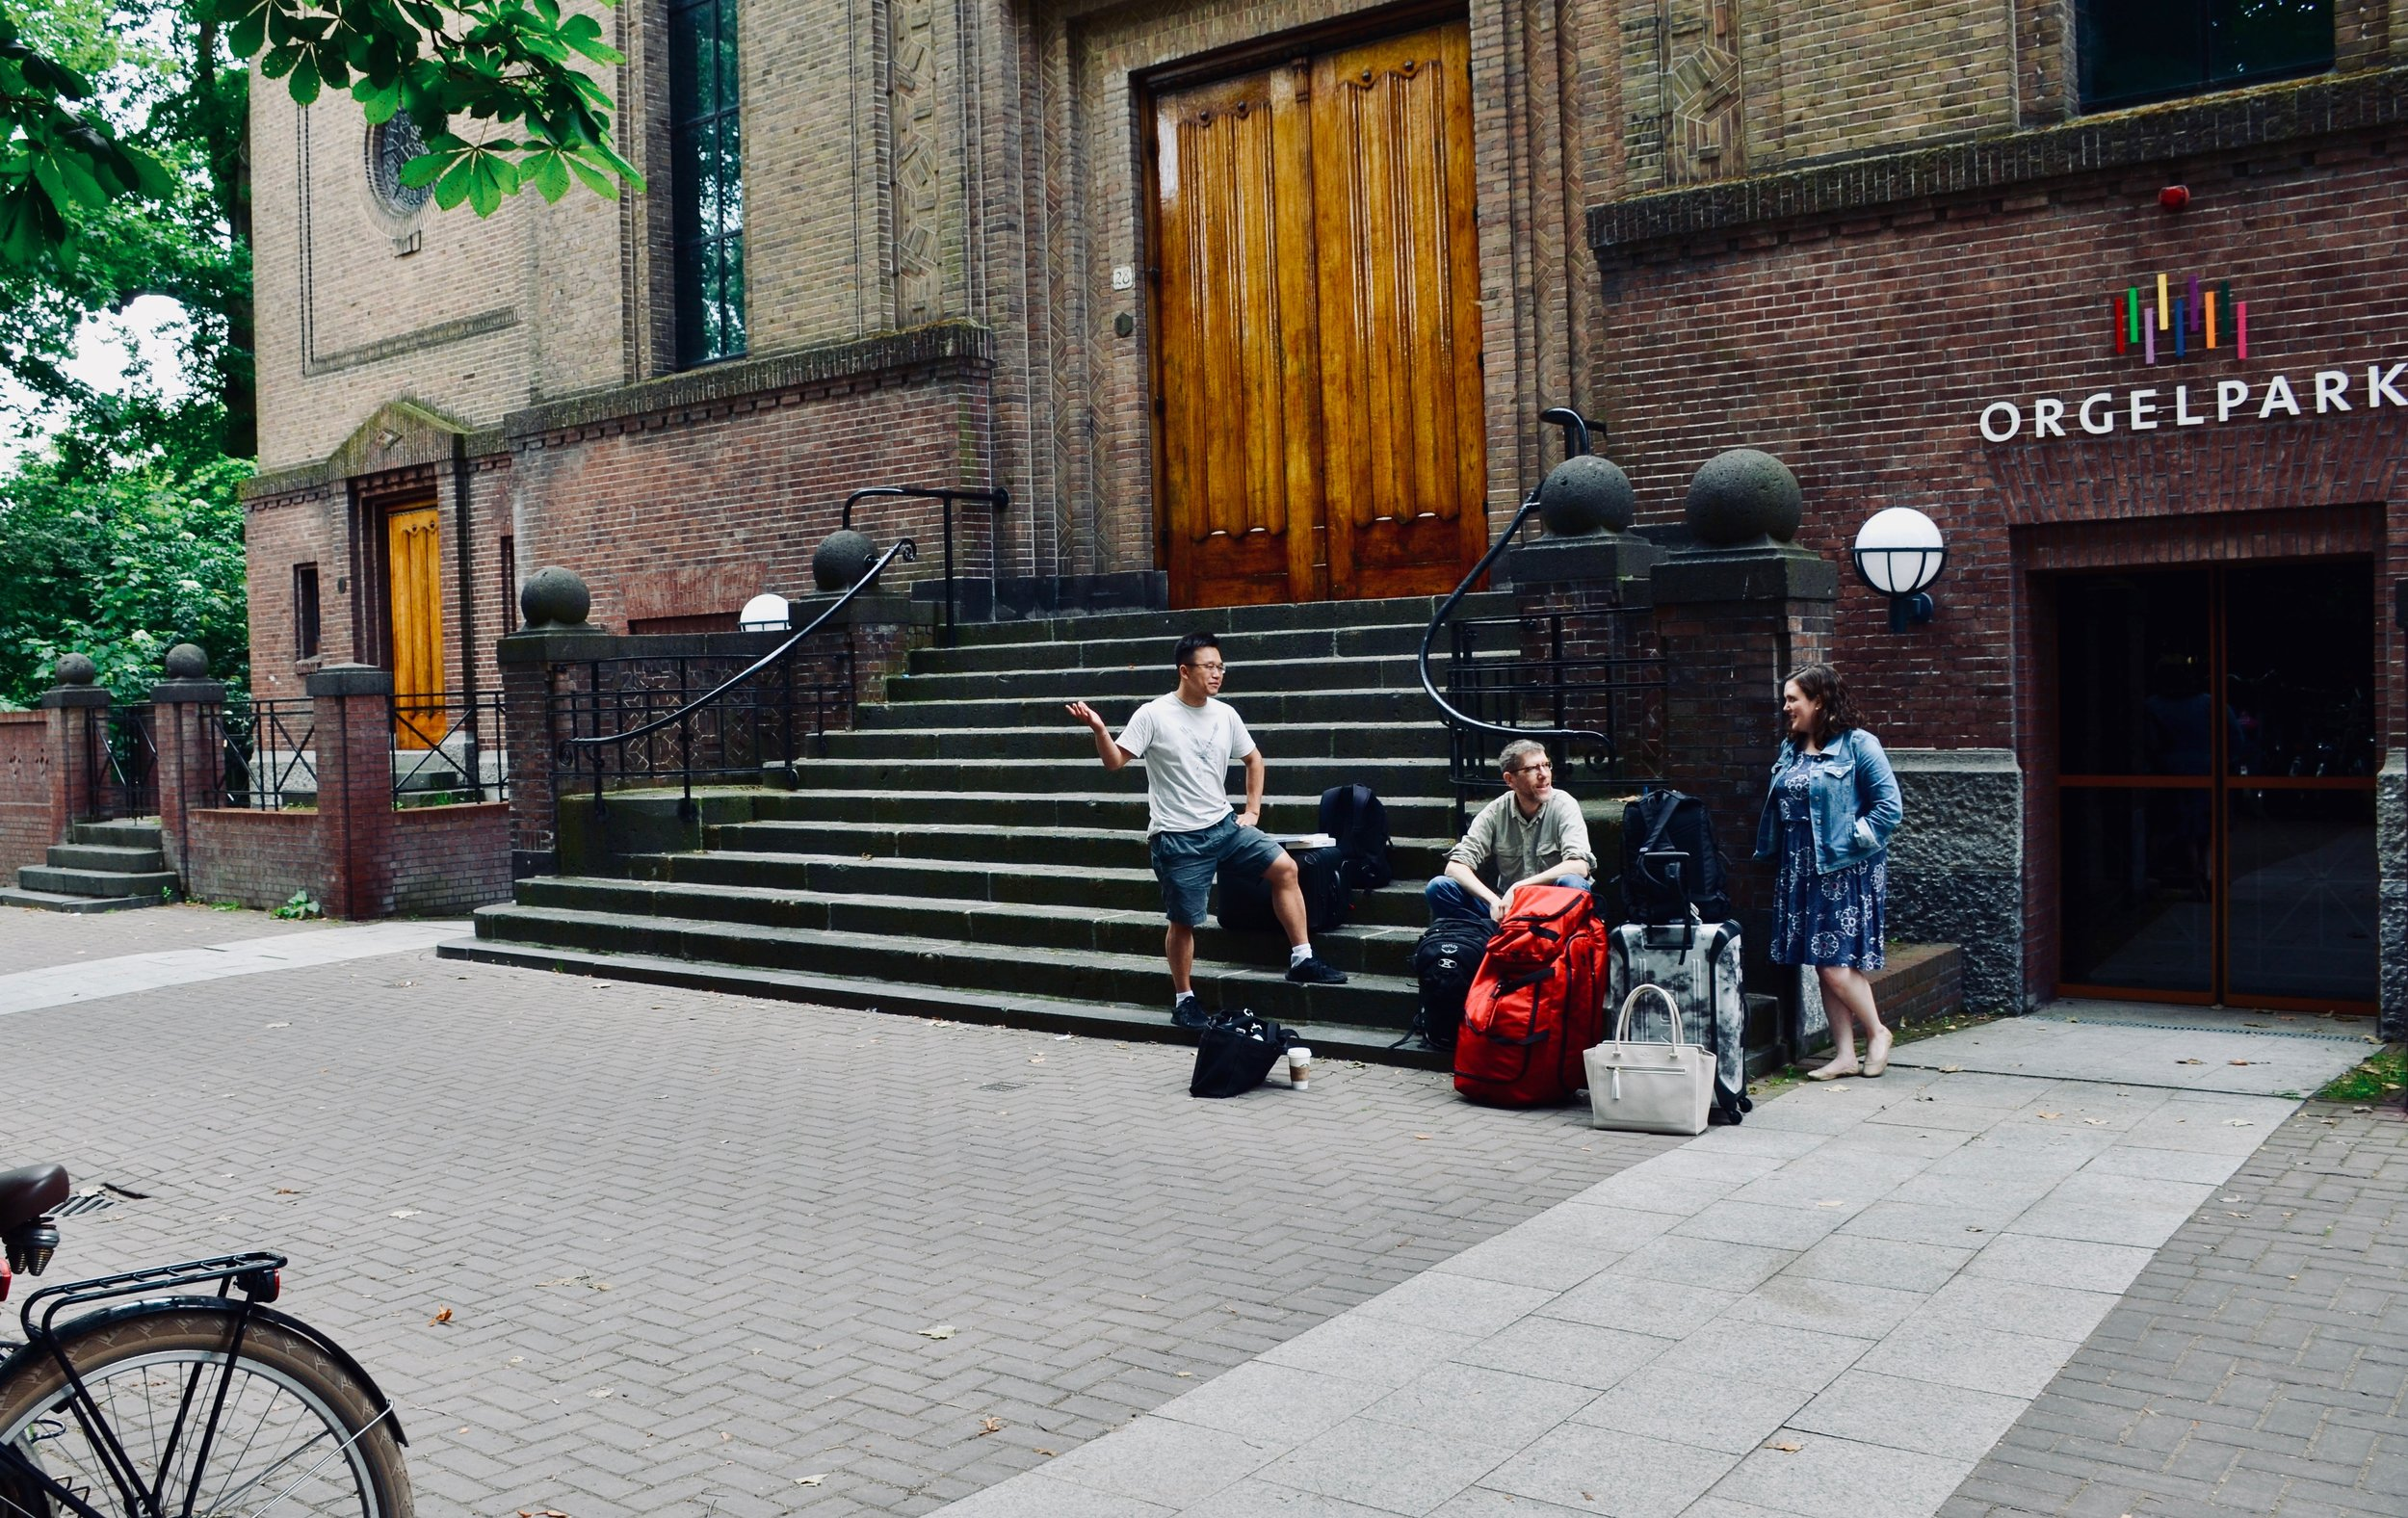 Adrian Cho, Chris Porter, and Chelsea Keating chat outside Orgelpark in Amsterdam.